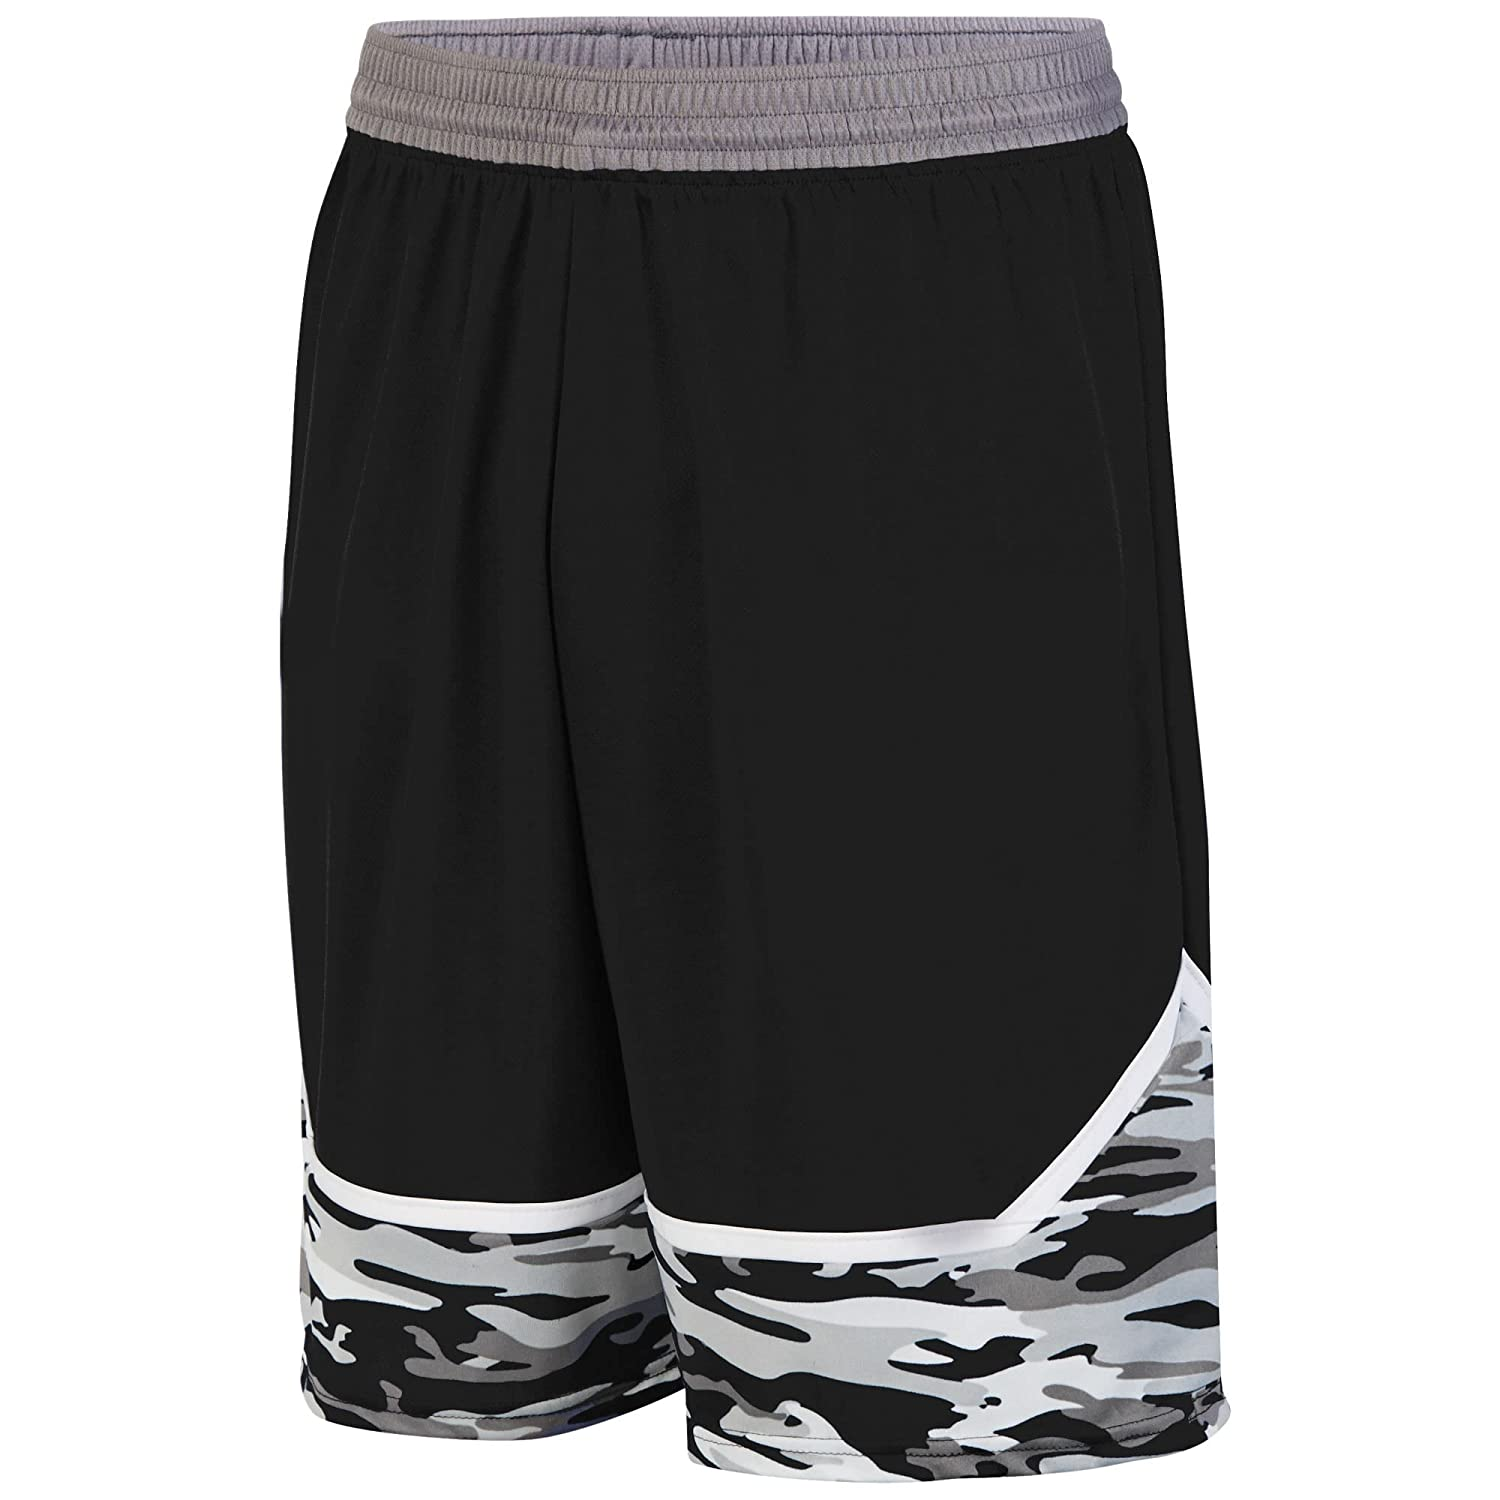 Augusta Sportswear Boys' Mod Camo Game Short L Black/Graphite/White Augusta Drop Ship 1118